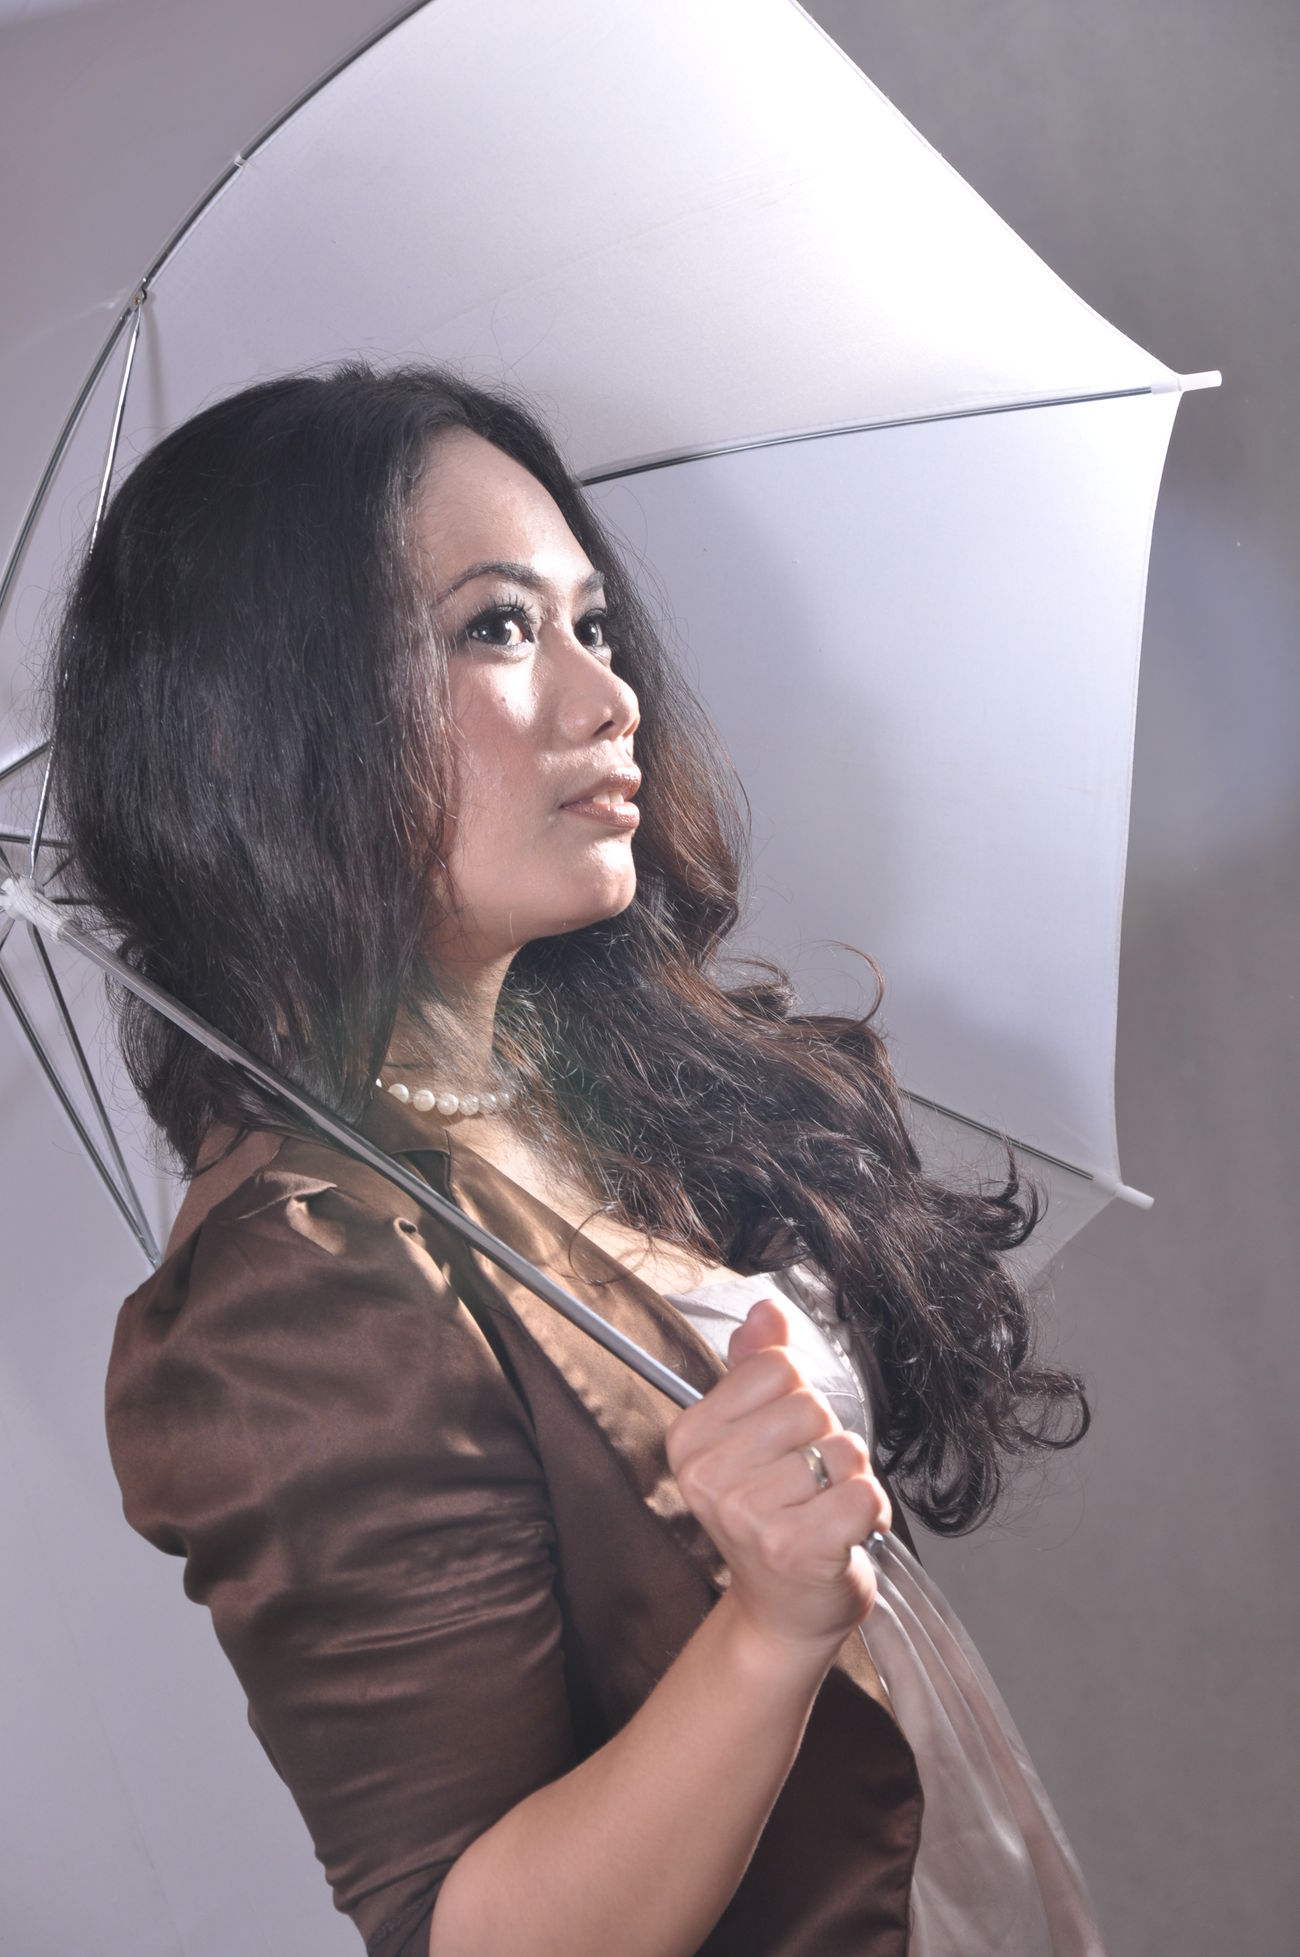 Under my umbrella...☔💧☁😁 Taking Photos Check This Out That's Me Cheese! Hello World Just Taking Pictures Take Picture Being A Model Make Moments Taking Pictures Cheese! Hi! Its Me Me Self Portrait Portrait Portrait Of A Woman January Showcase: January